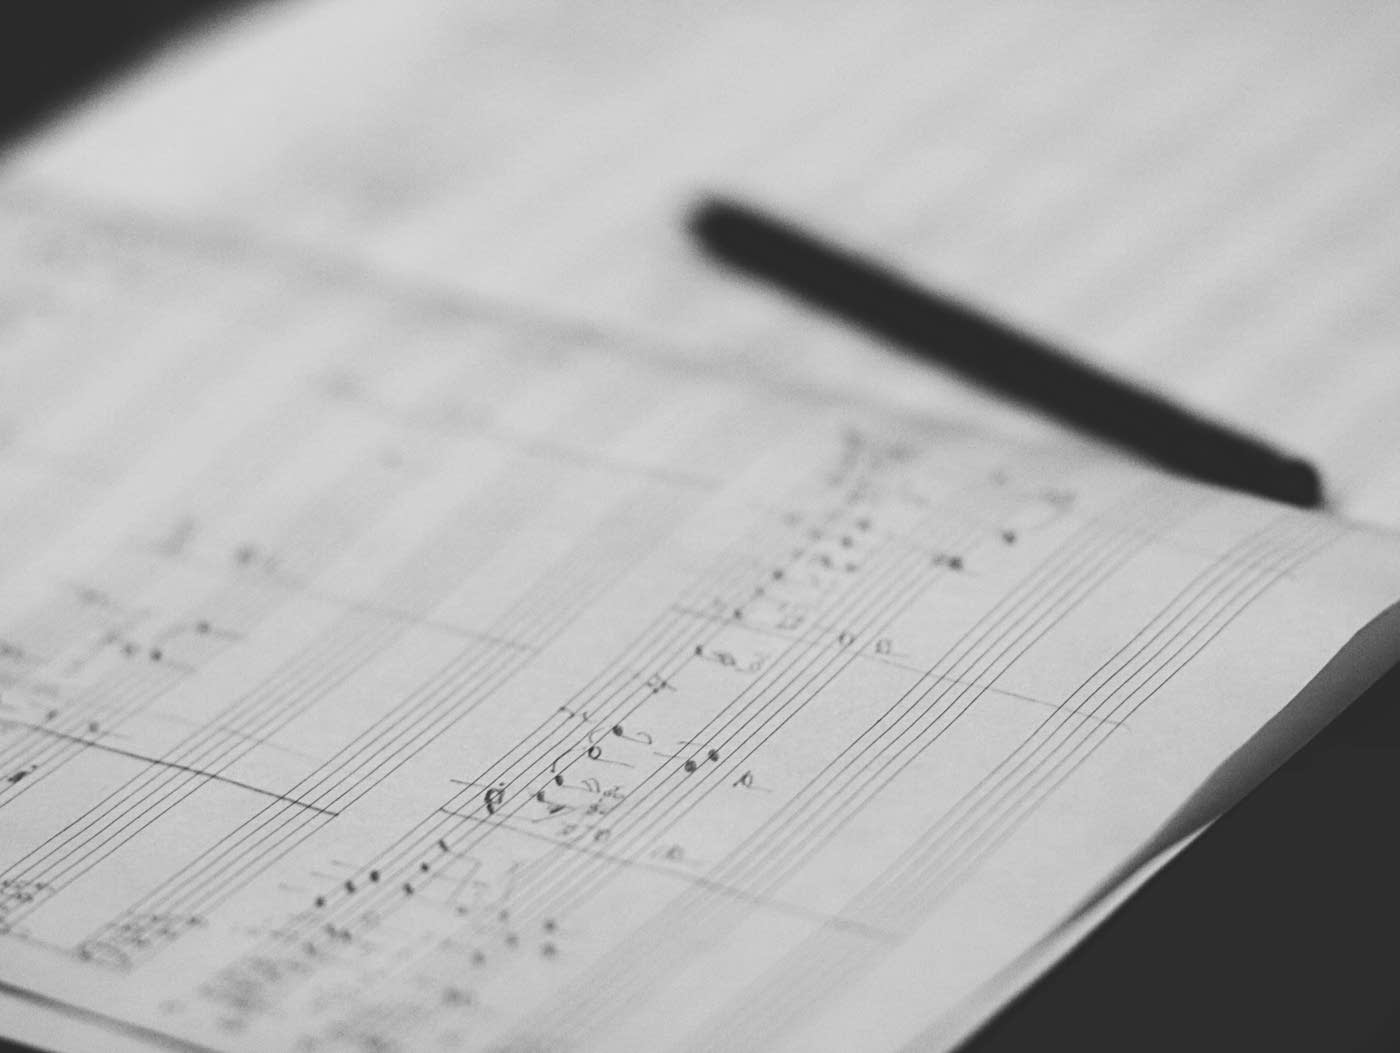 write music term paper How to write a term paper it's an important academic assignment, so learn effective techniques and guidelines if you want to get high grades writing a good draft can take a lot of hard work and time, but a detailed outline will make the entire process easier.